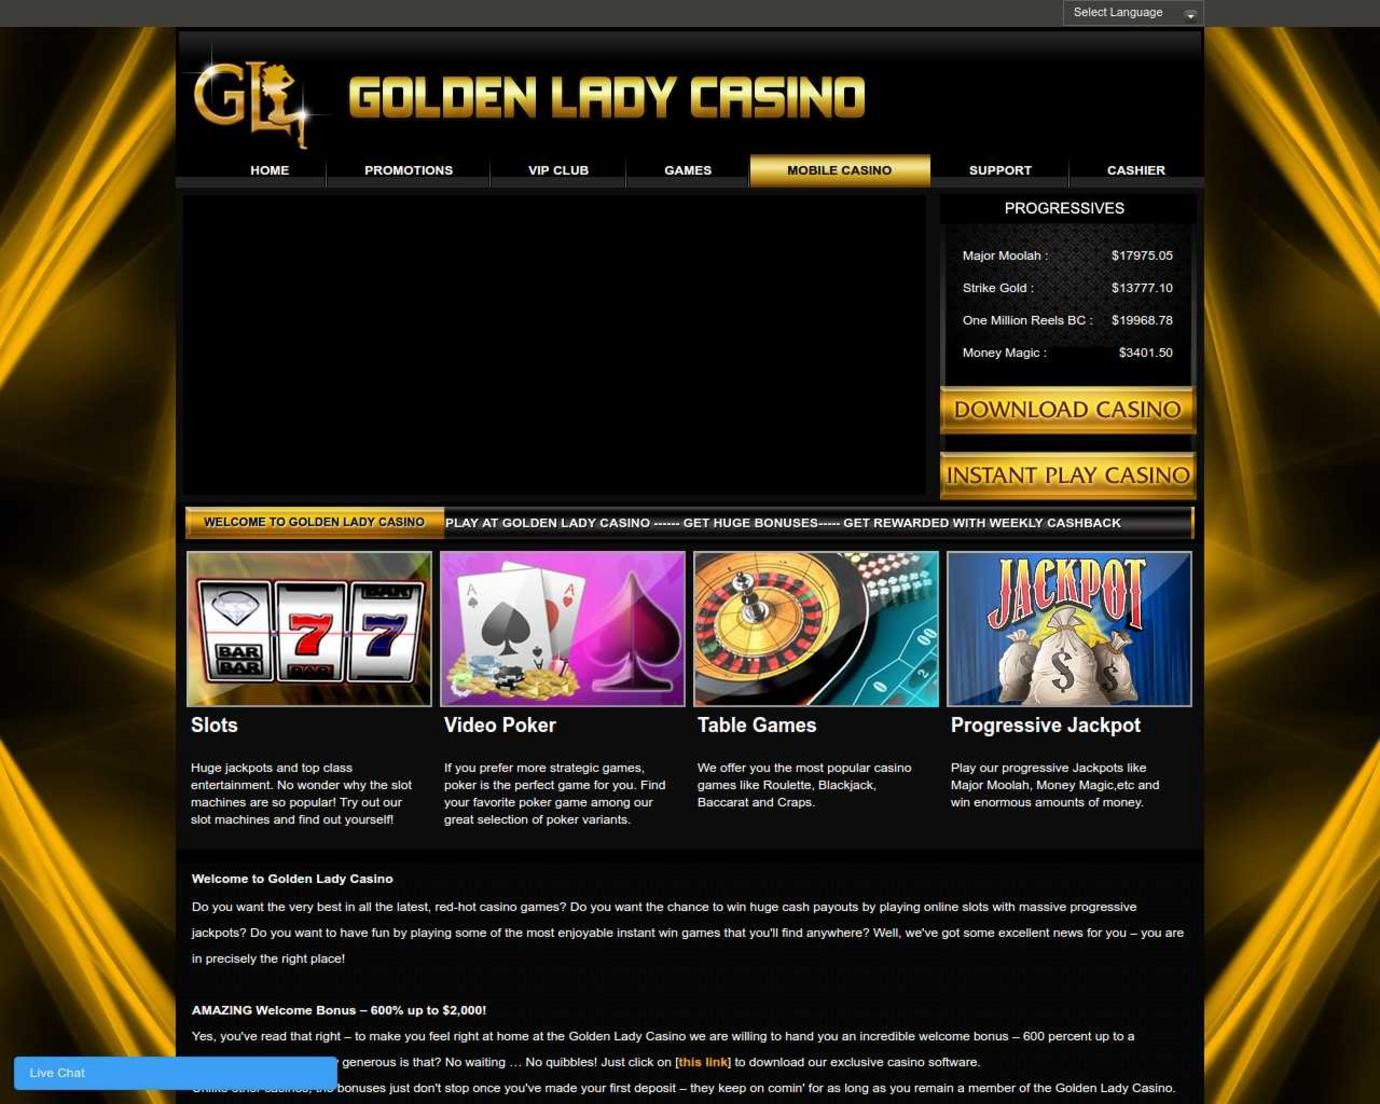 Golden Lady Casino